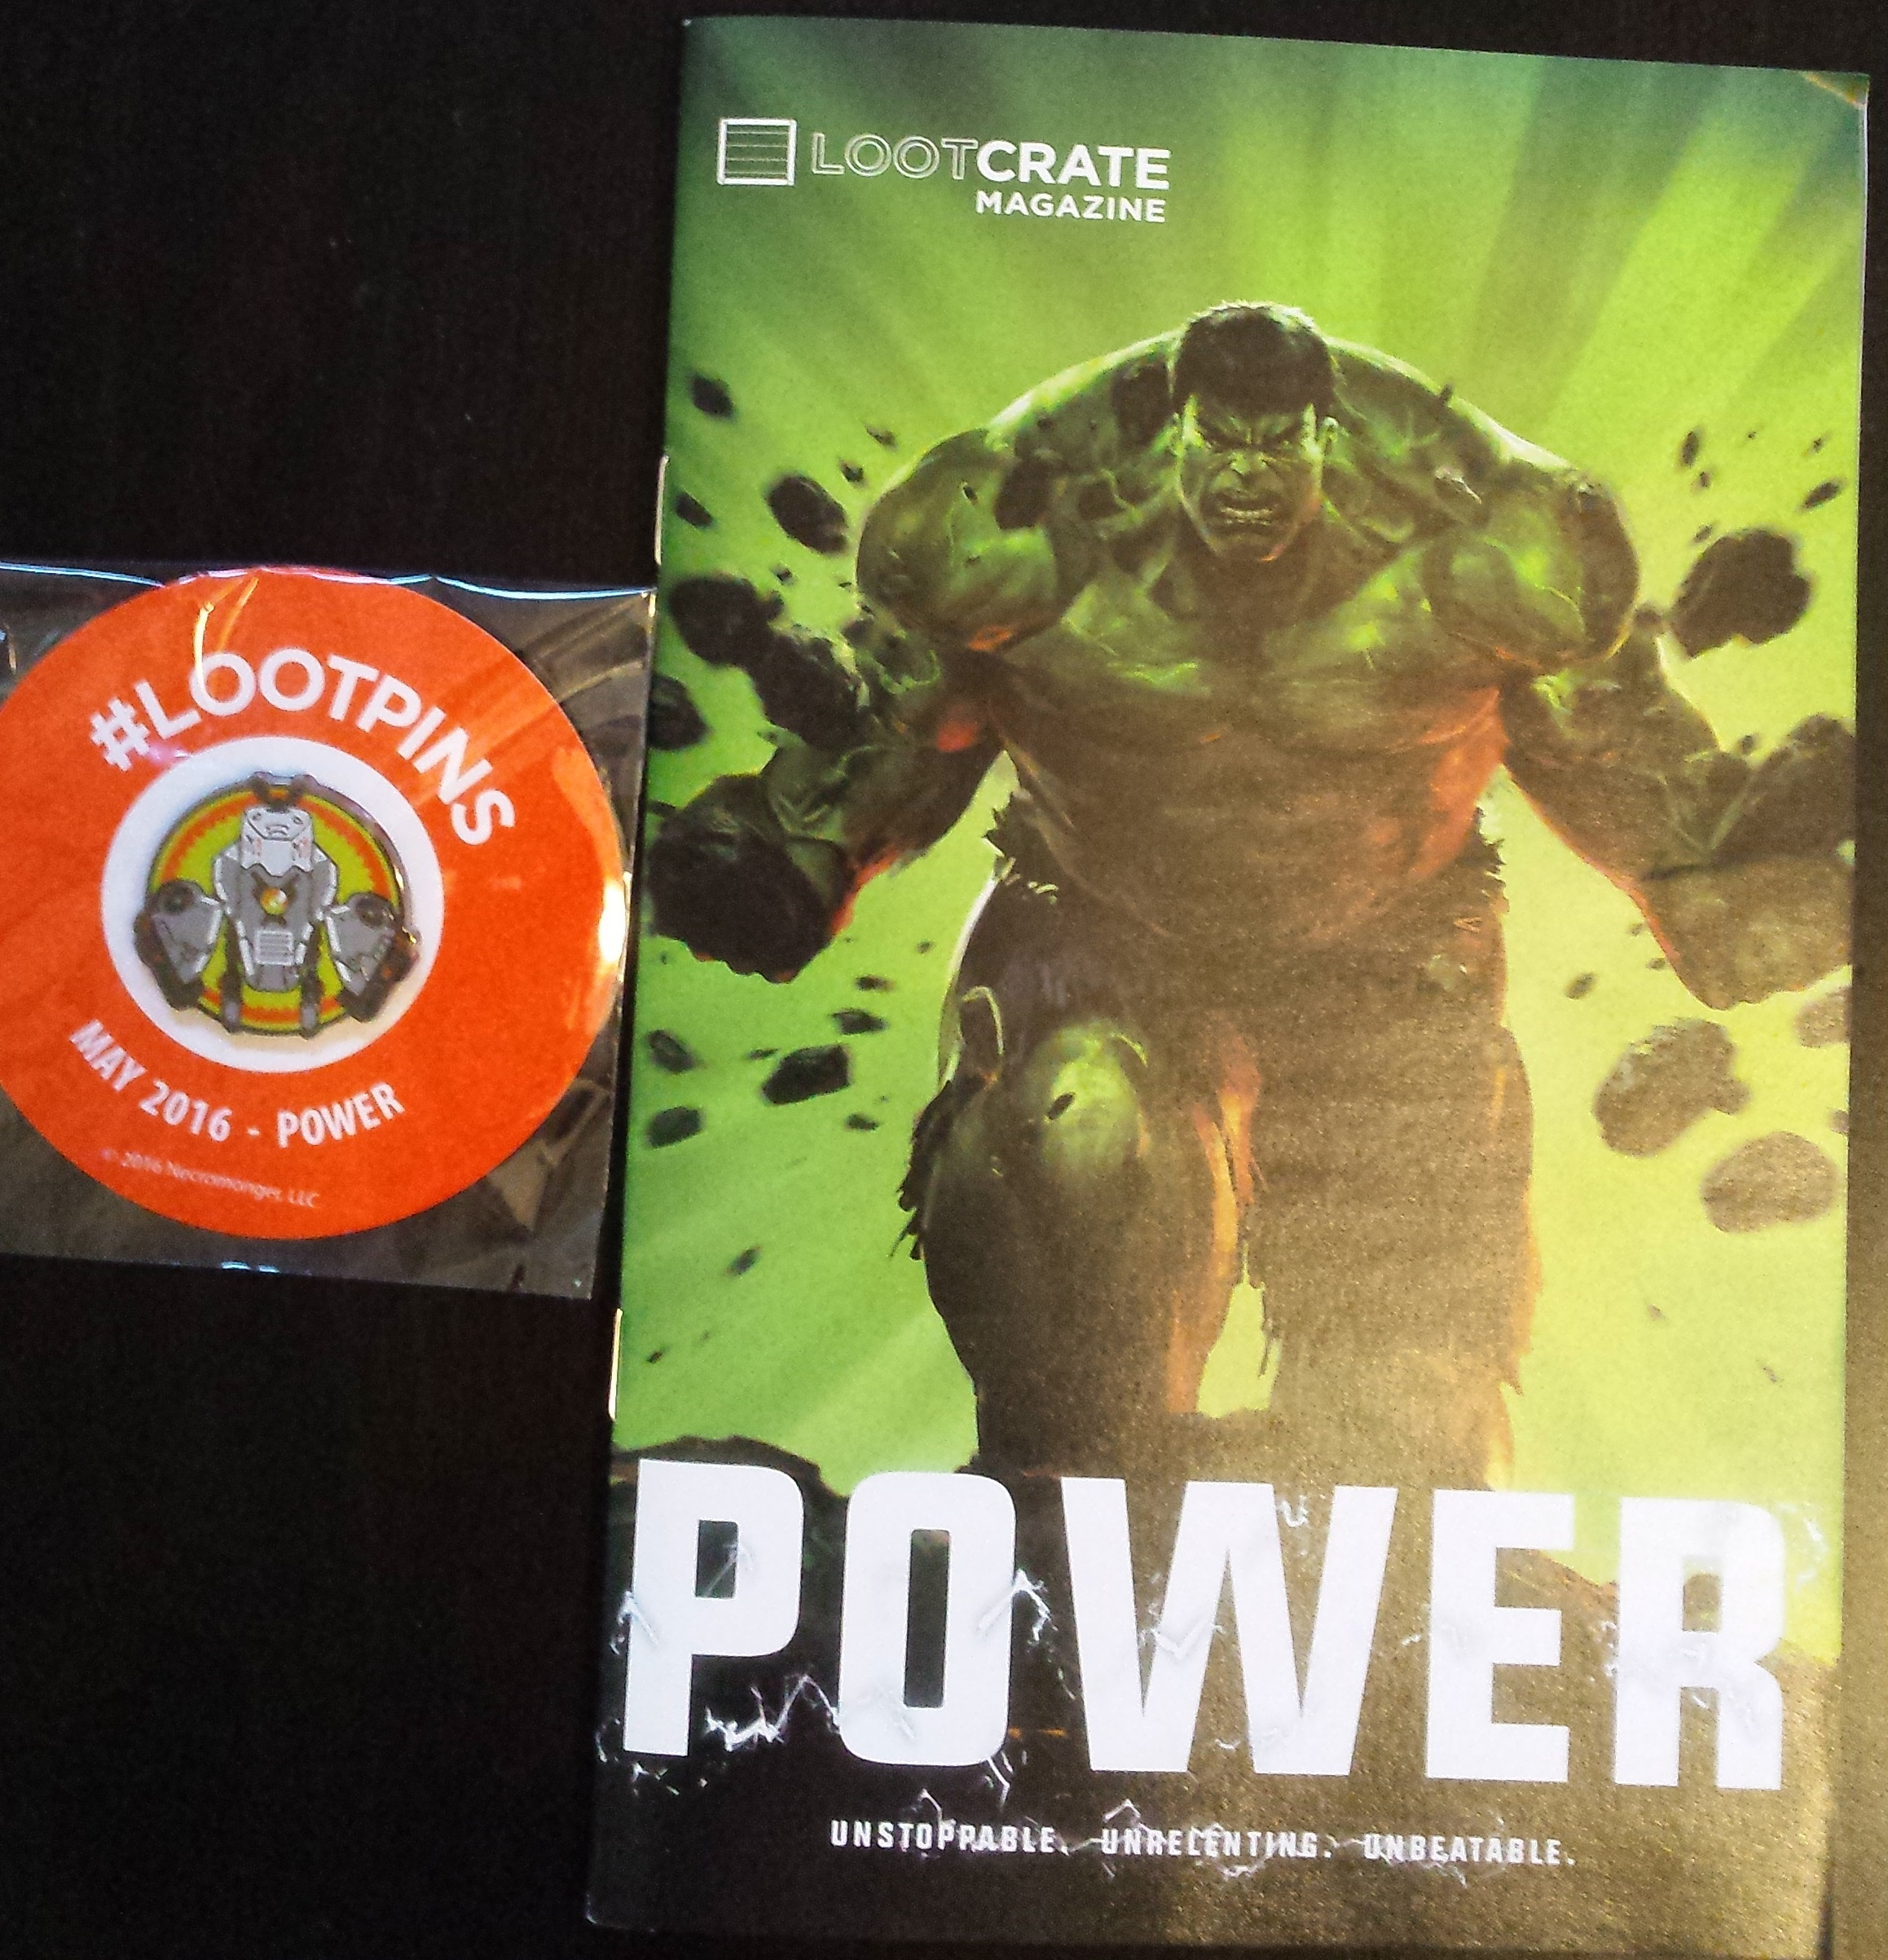 May's loot crate, power, the hulk, loot pins, loot crate magazine